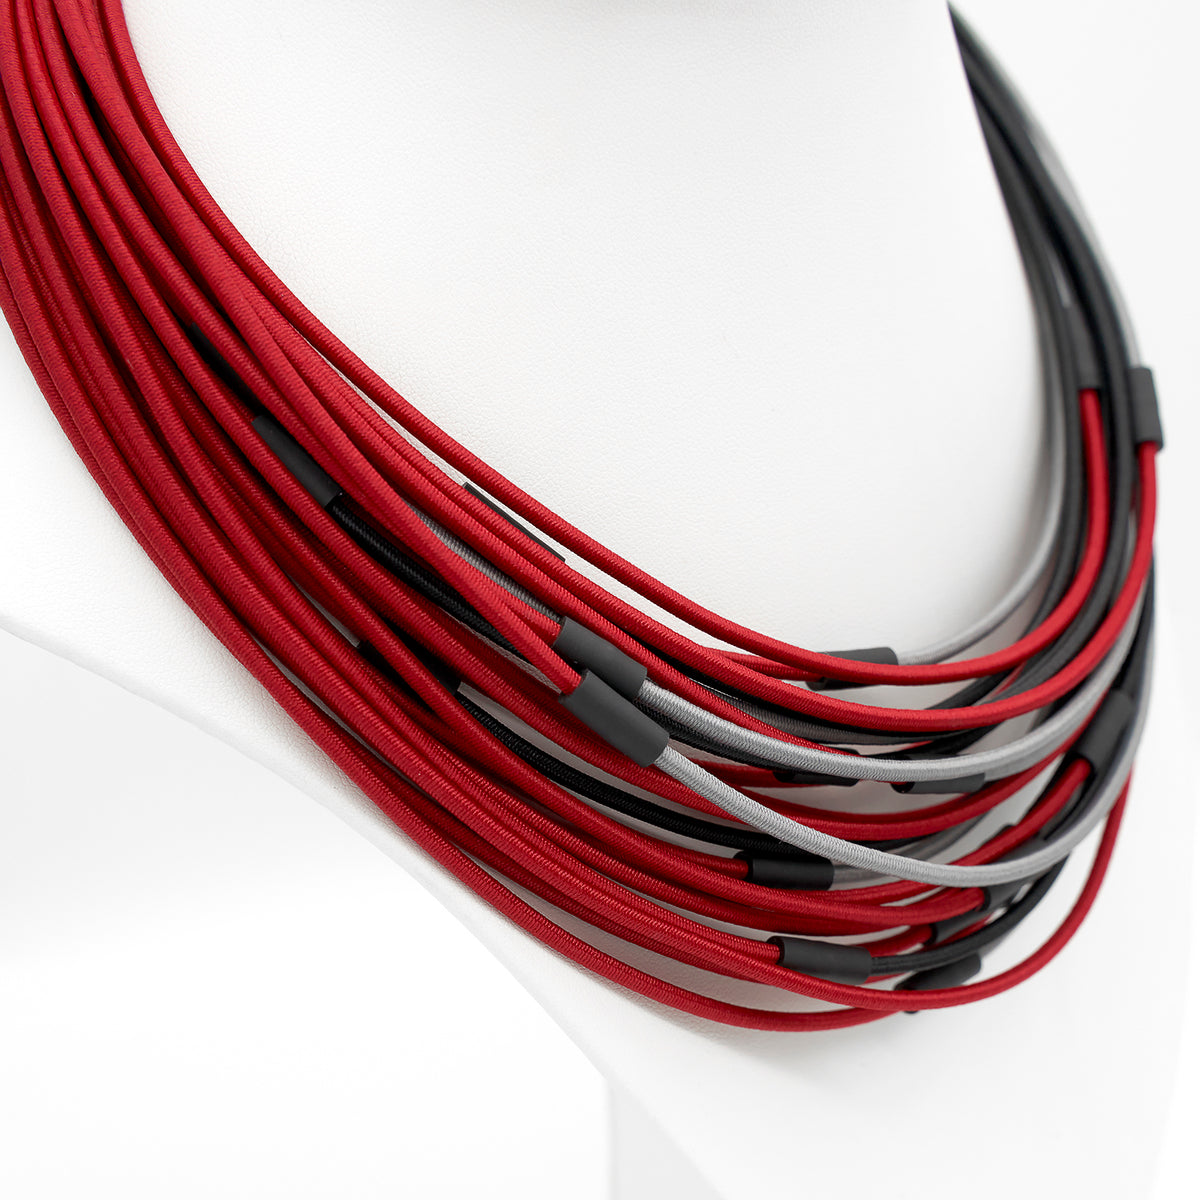 ALTERNATE WIRE NECKLACE